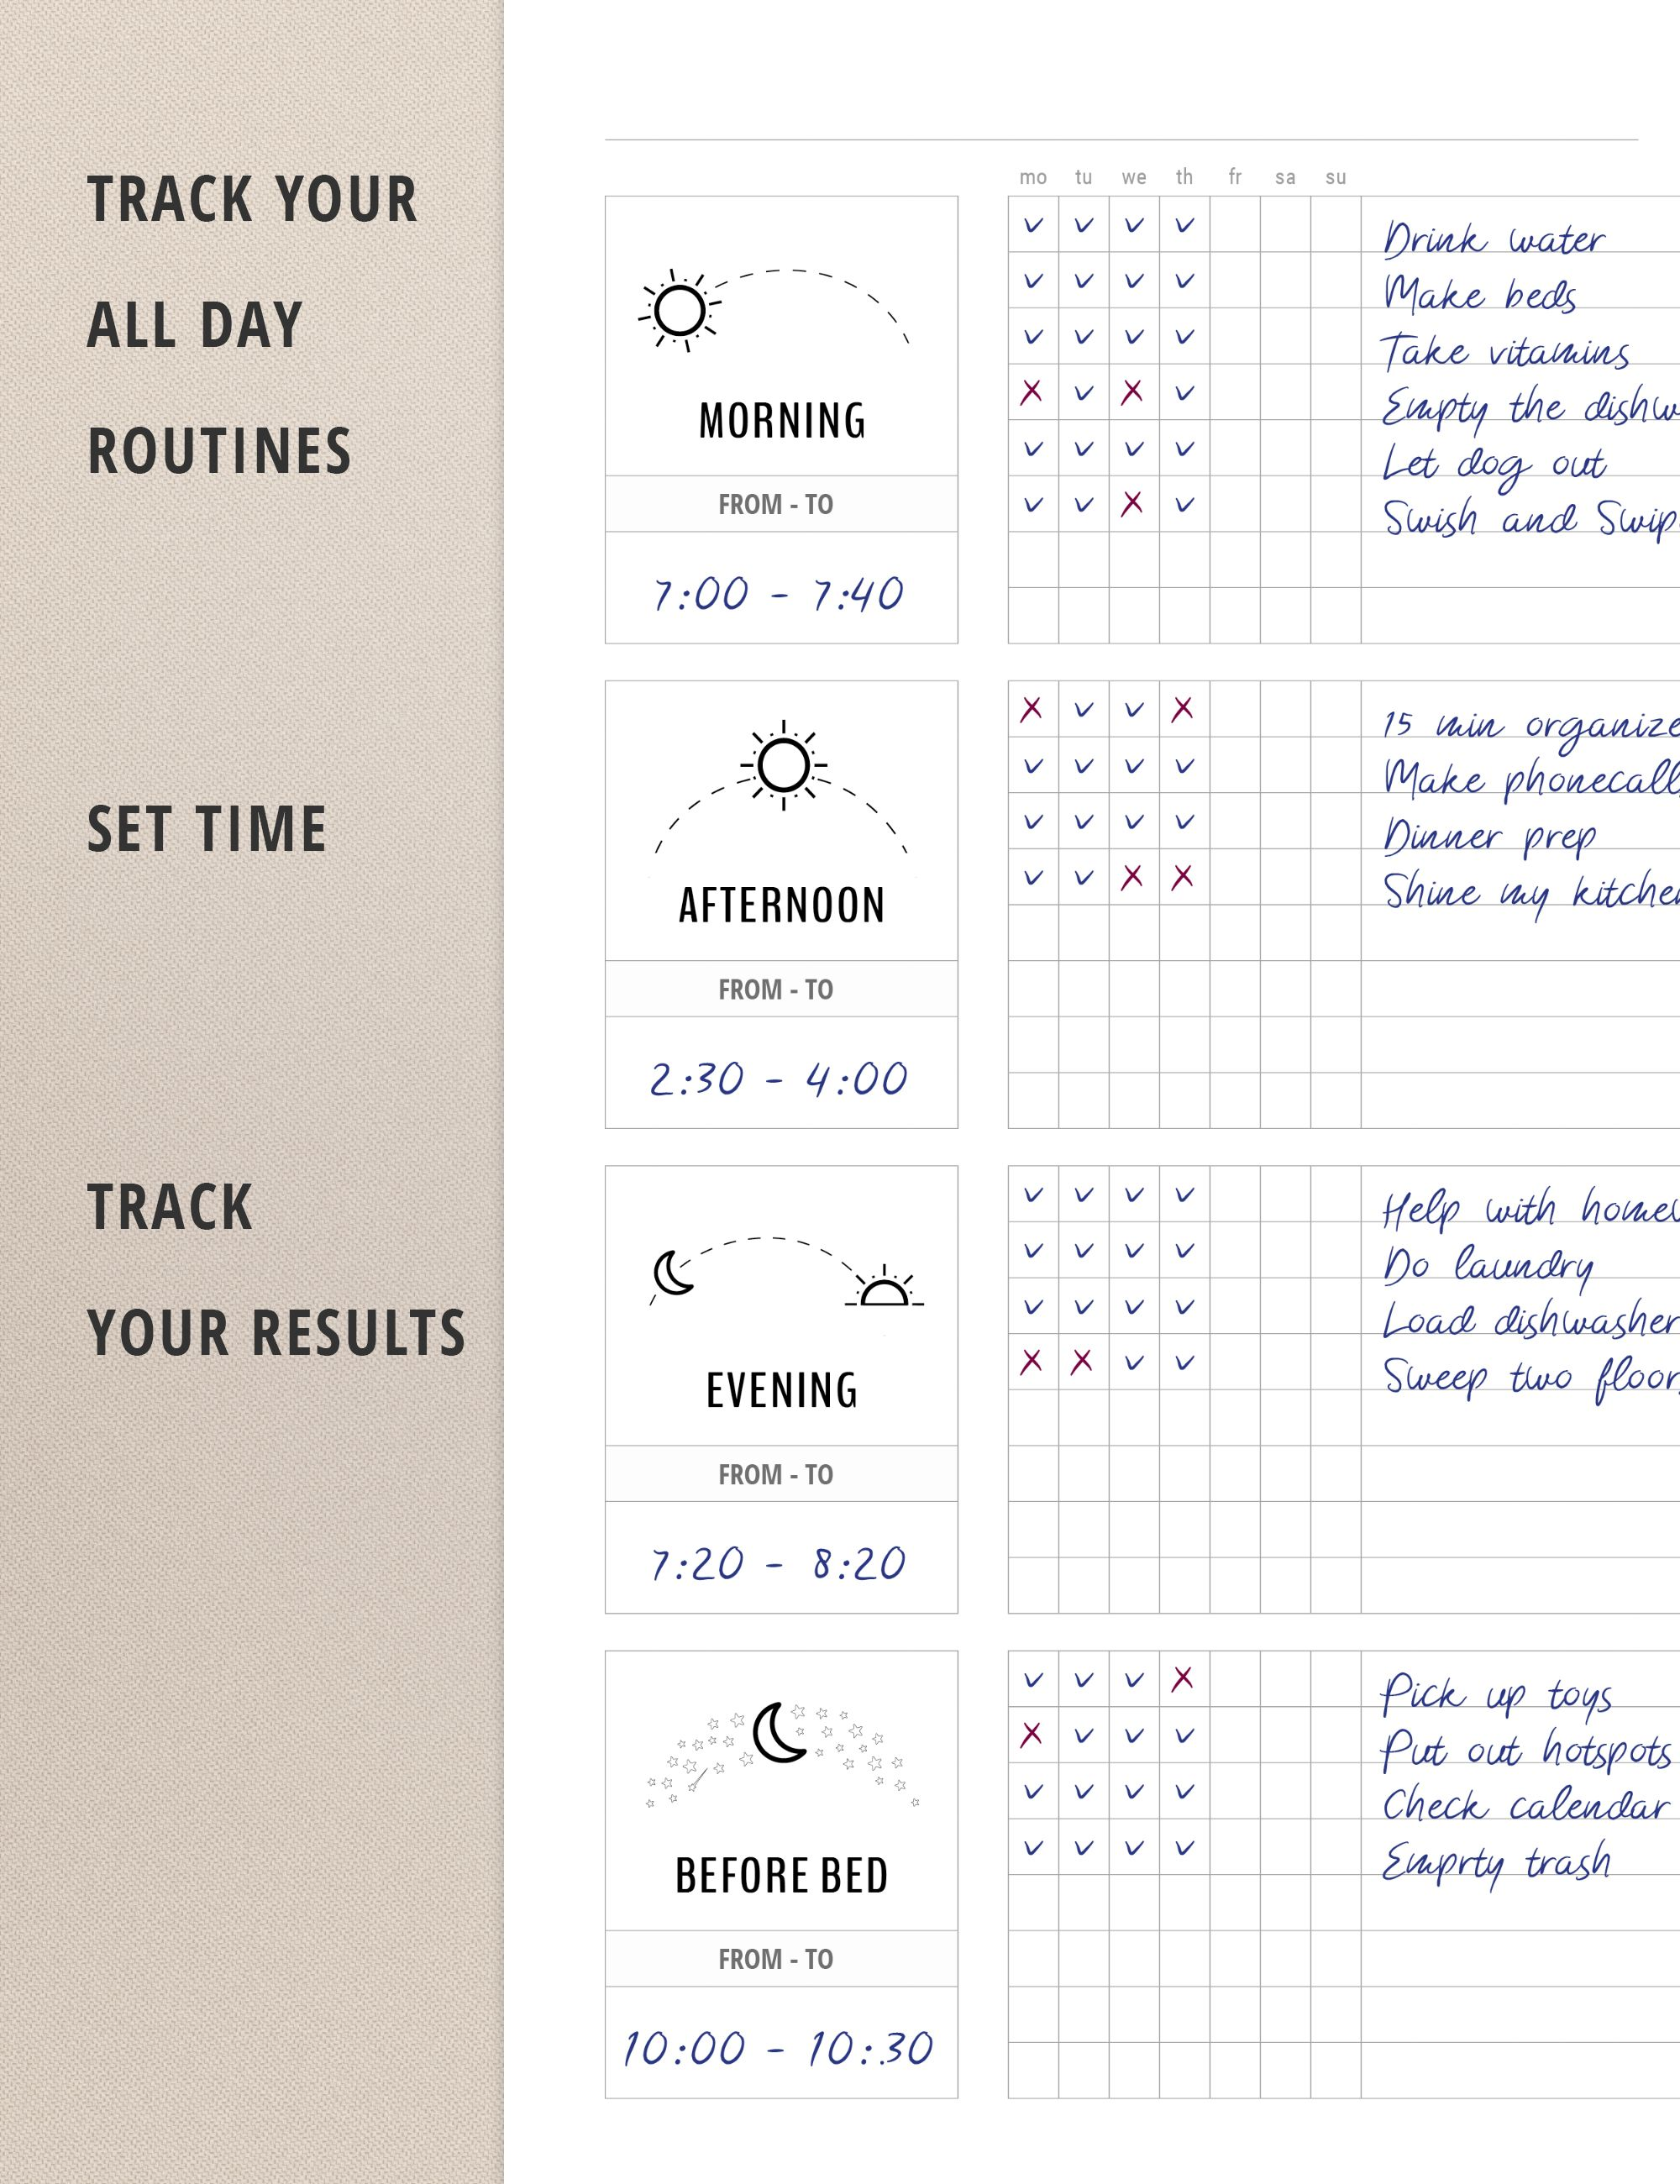 Daily Routine Flylady Morning Routine Checklist Habit